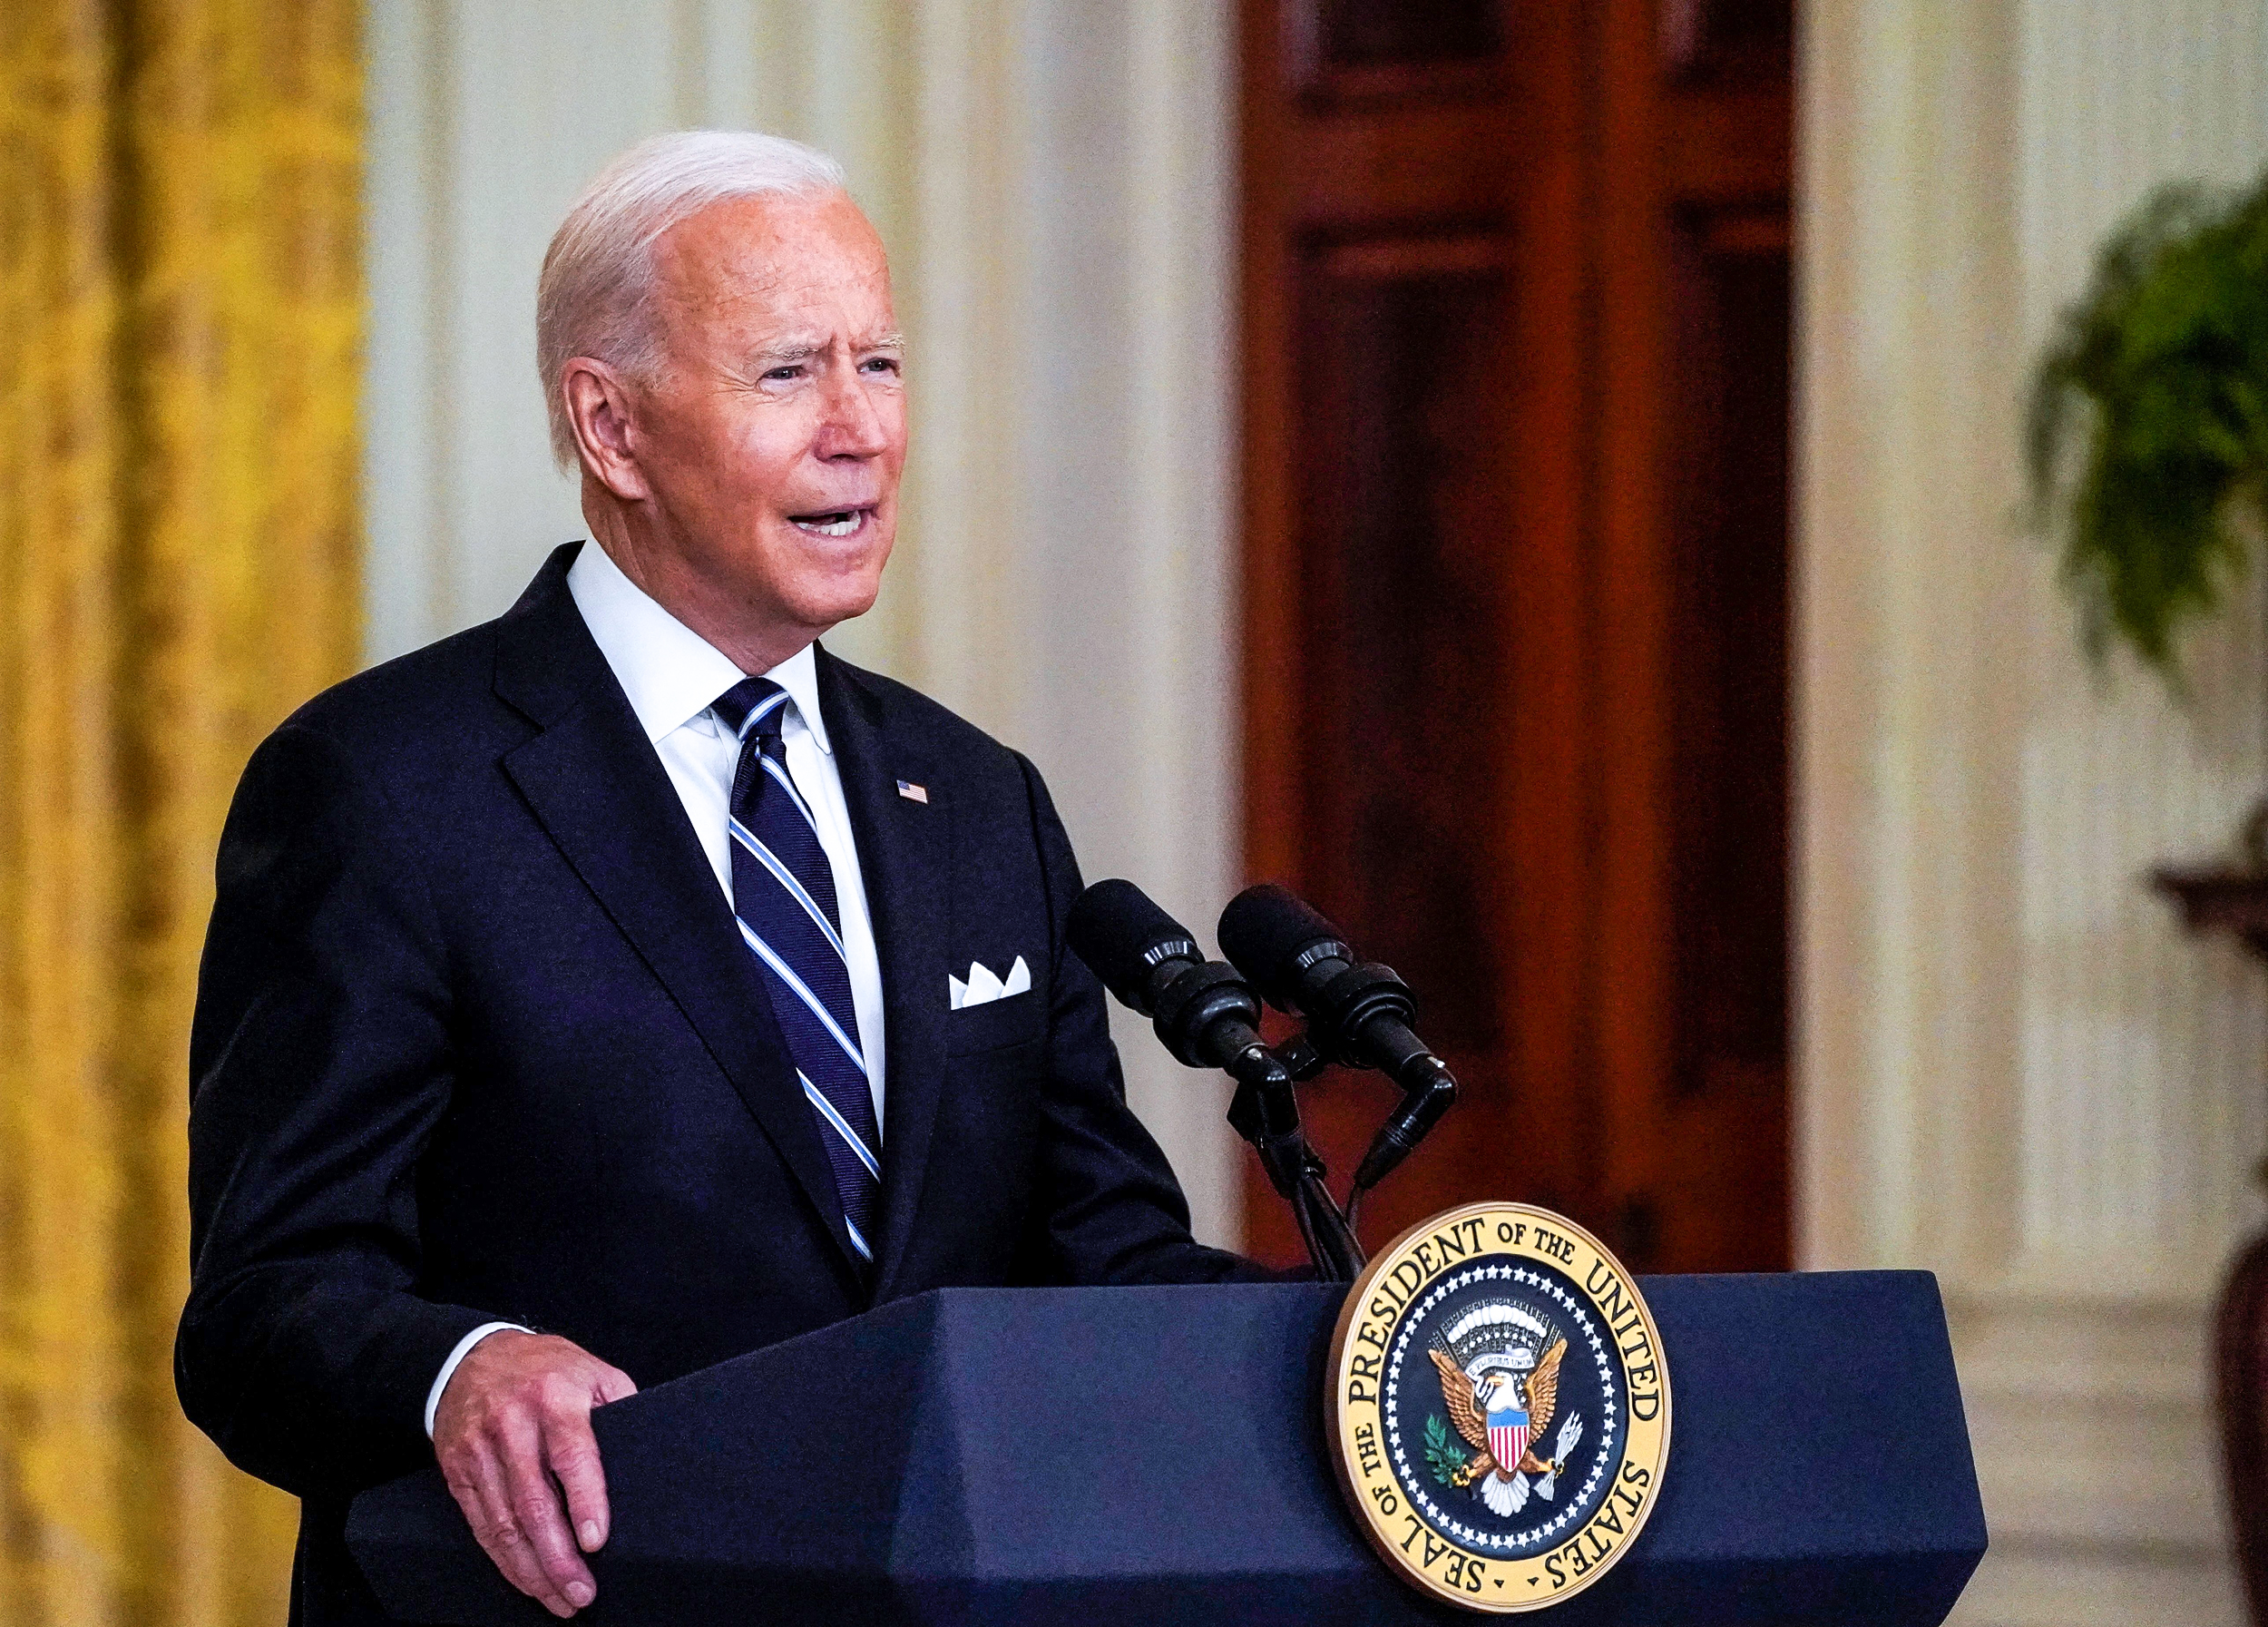 Biden says his administration will take on GOP governors blocking masks in schools